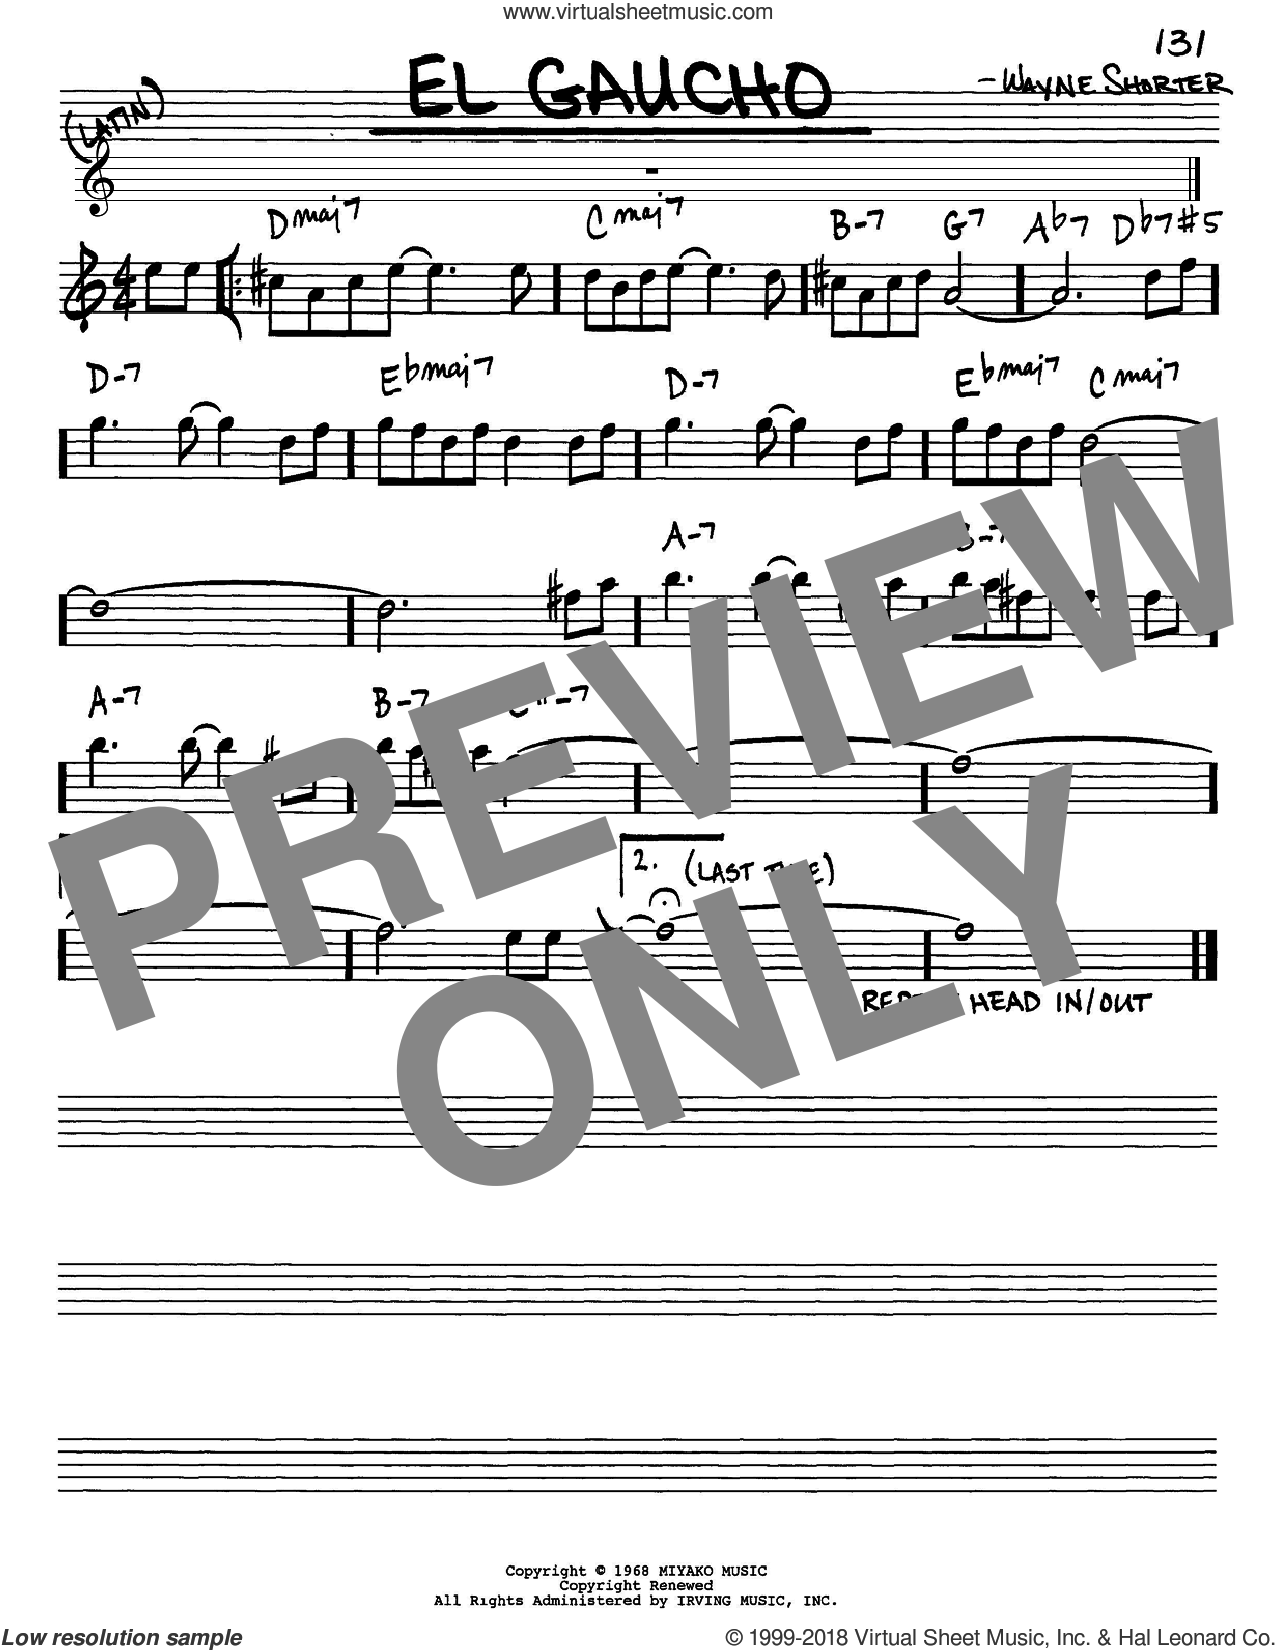 El Gaucho sheet music for voice and other instruments (Eb) by Wayne Shorter. Score Image Preview.